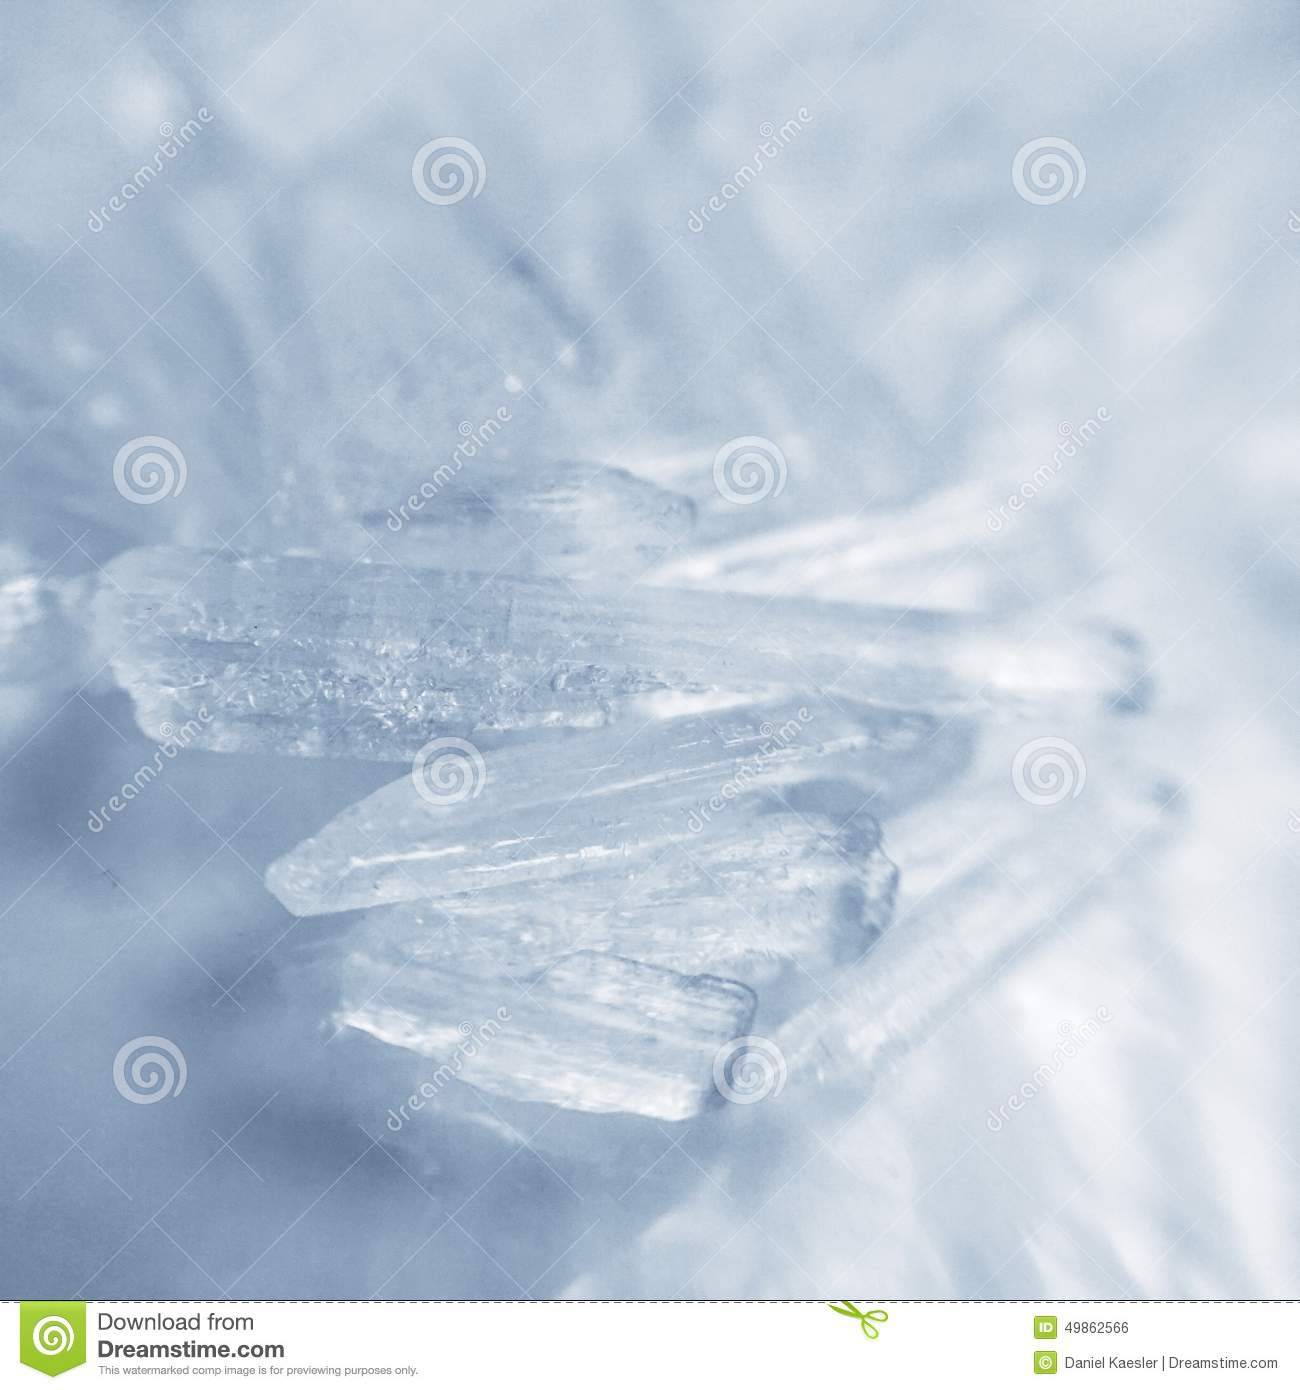 Methamphetine Crystal Meth Stock Photo   Image  49862566